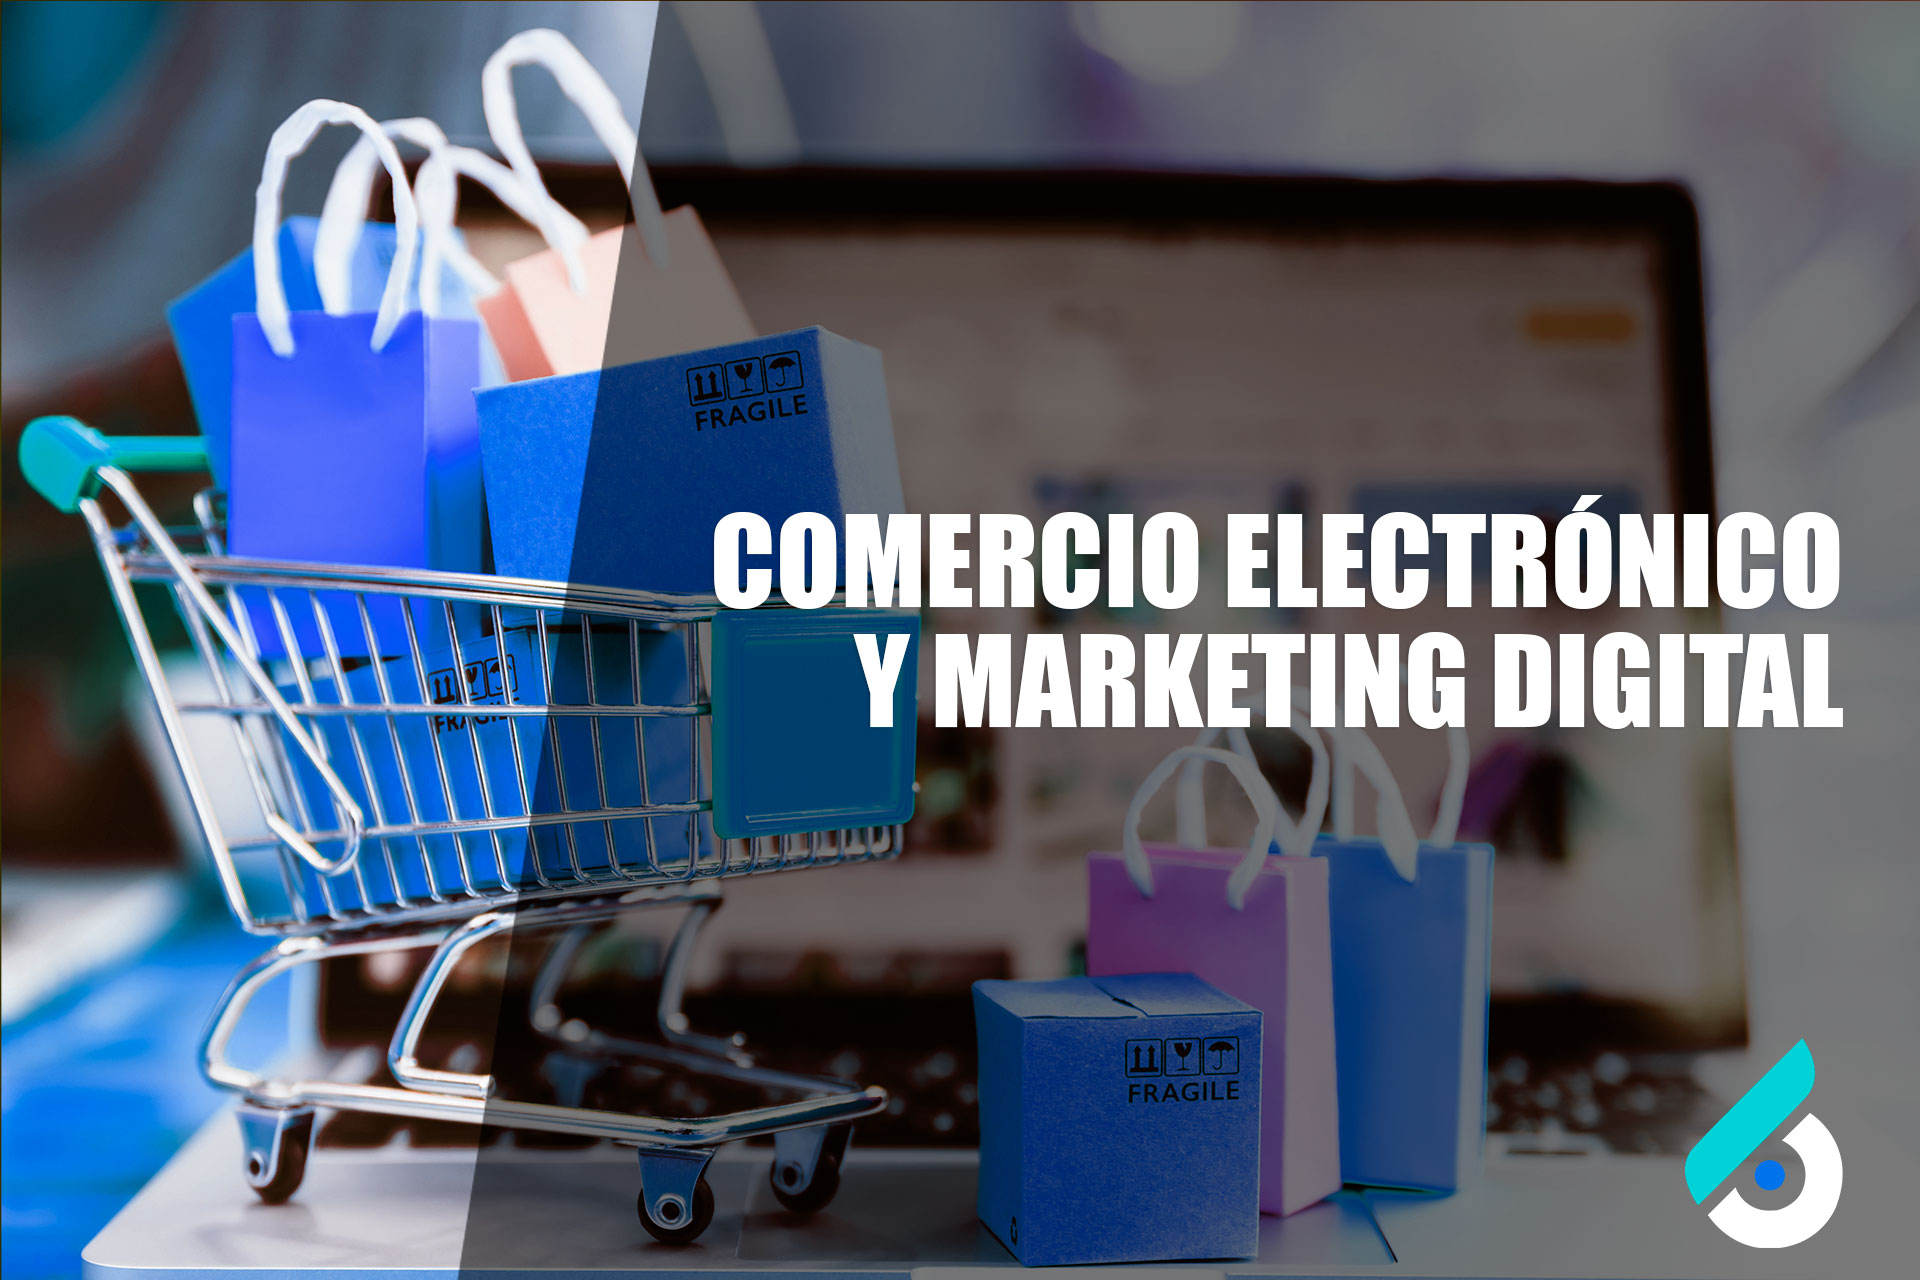 DMIPE-20-01-13-0416-1 | Comercio Electrónico y Marketing Digital